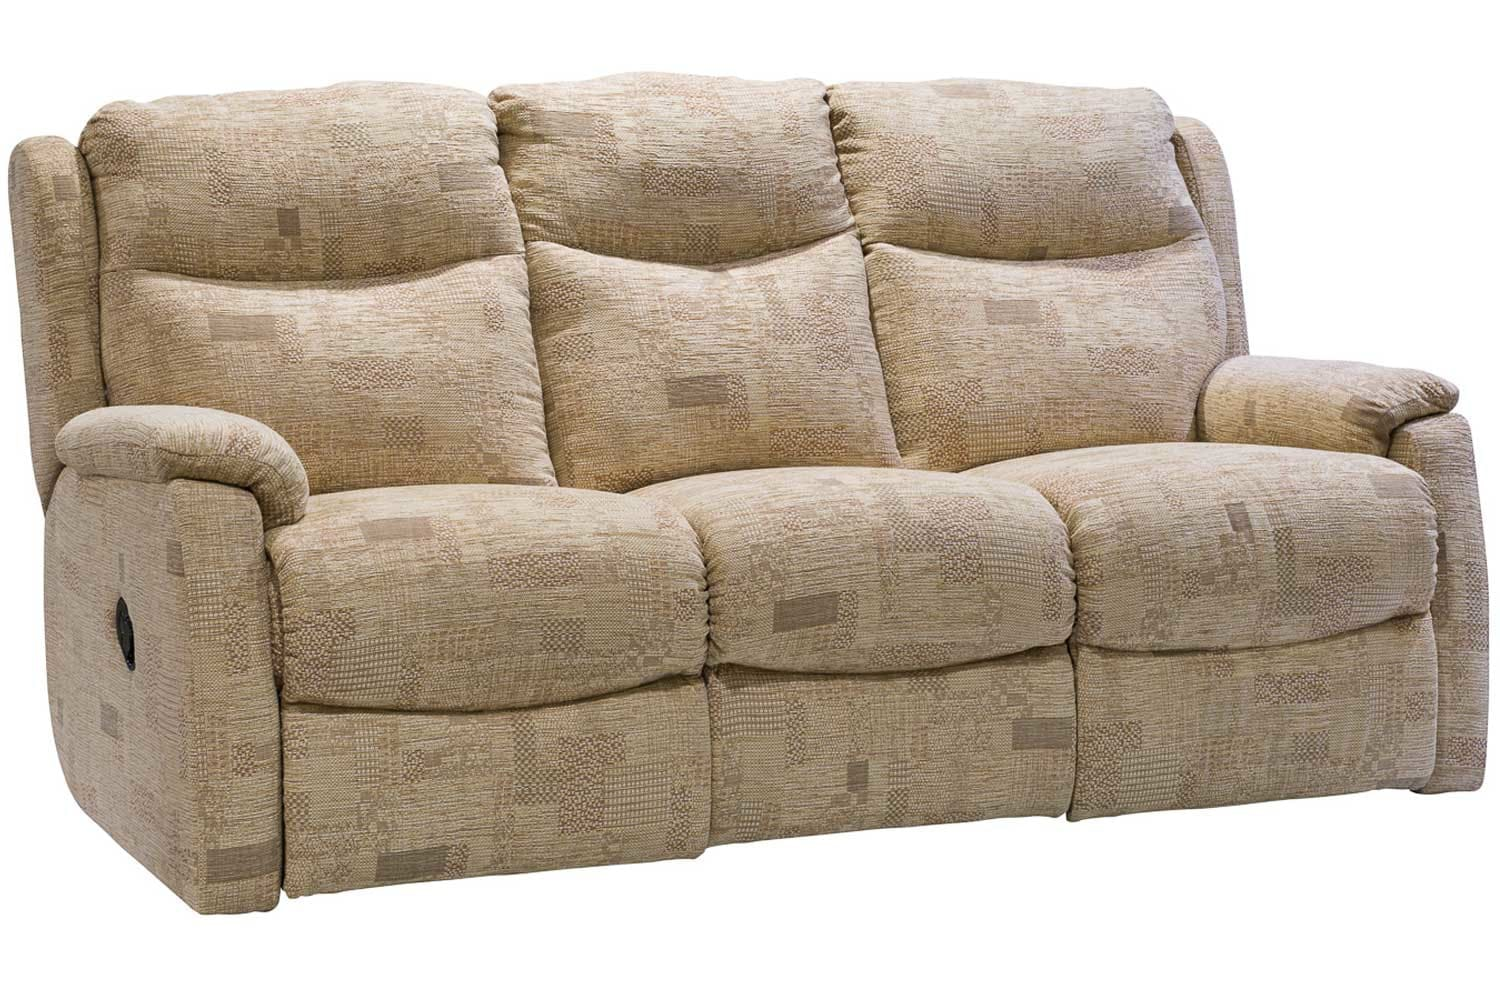 Barton 3 Seater Sofa